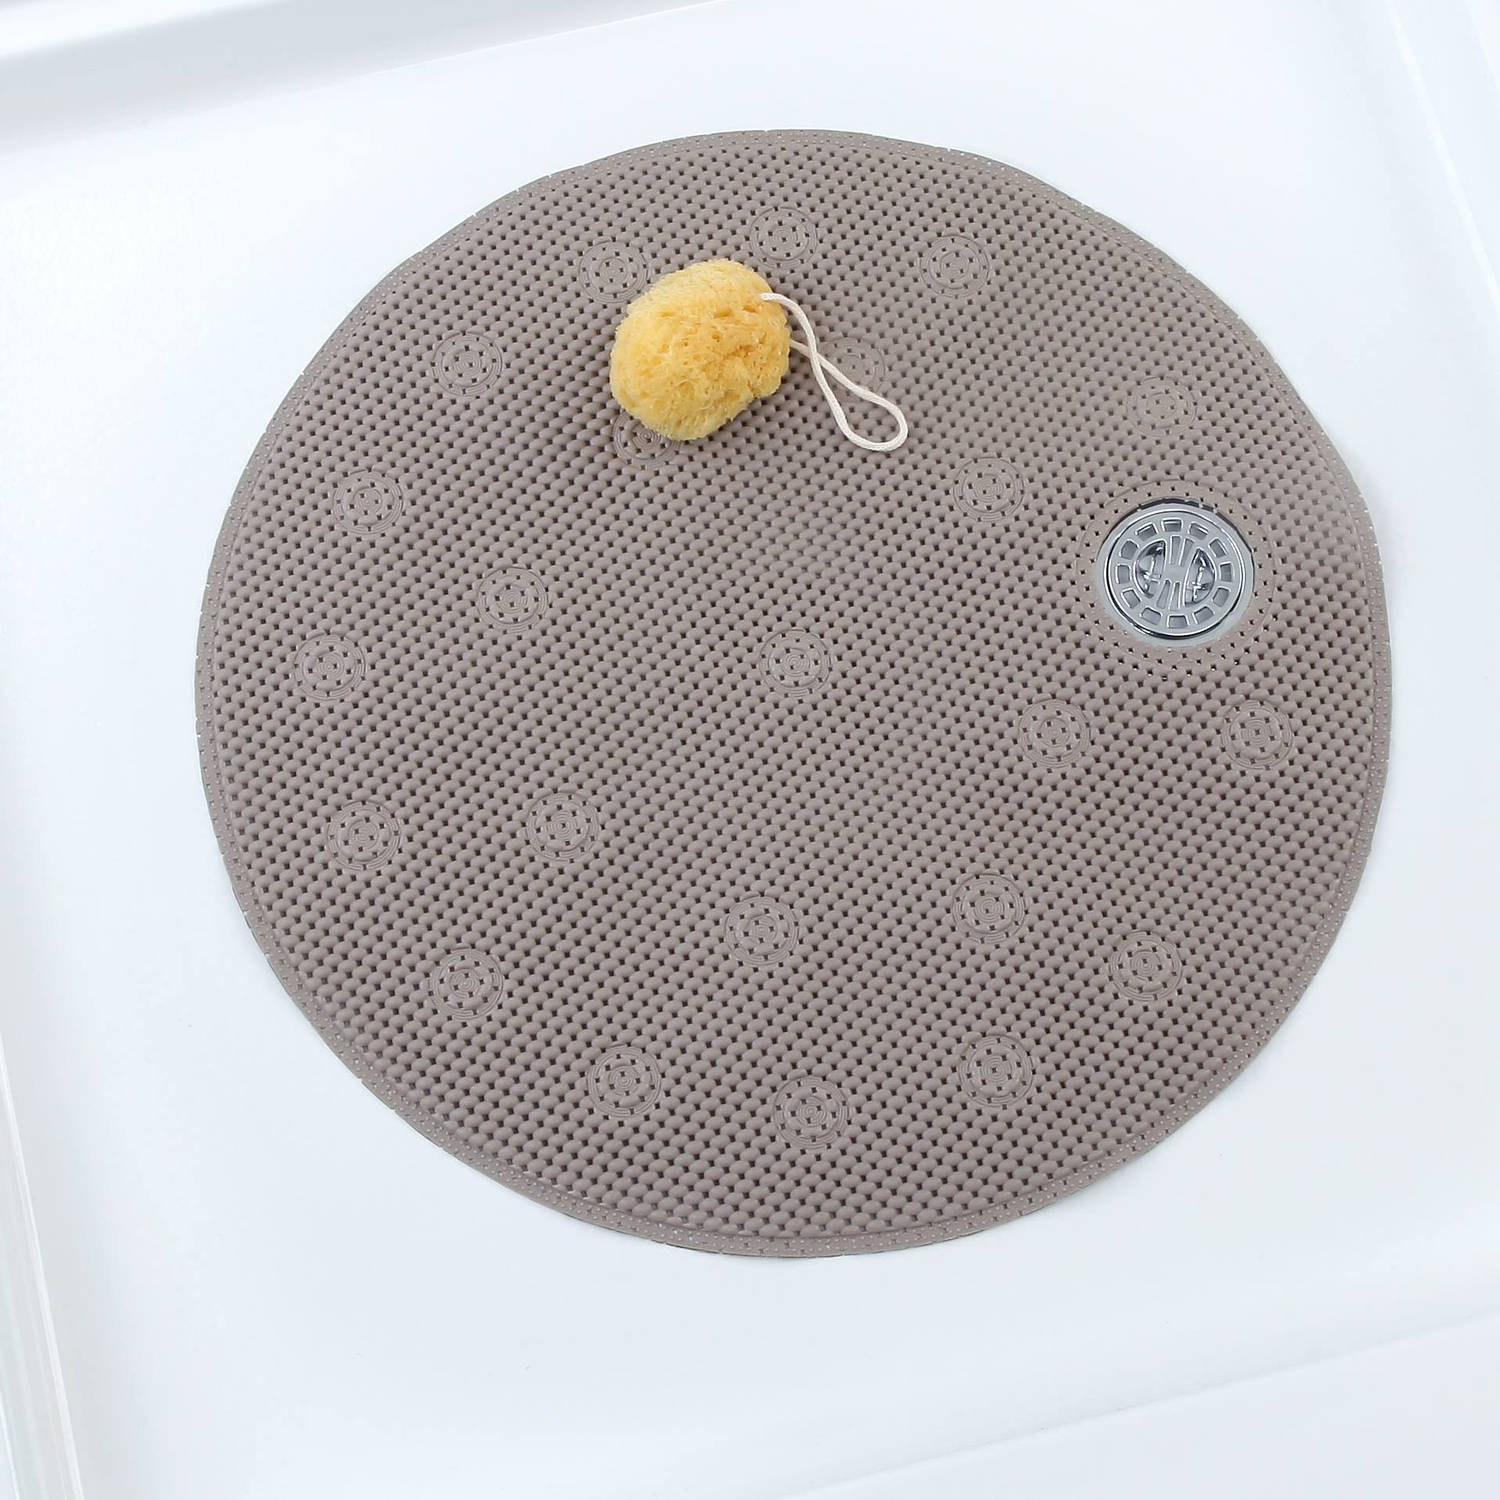 Slipx Solutions Comfort Foam Shower Mat With Offset Drain